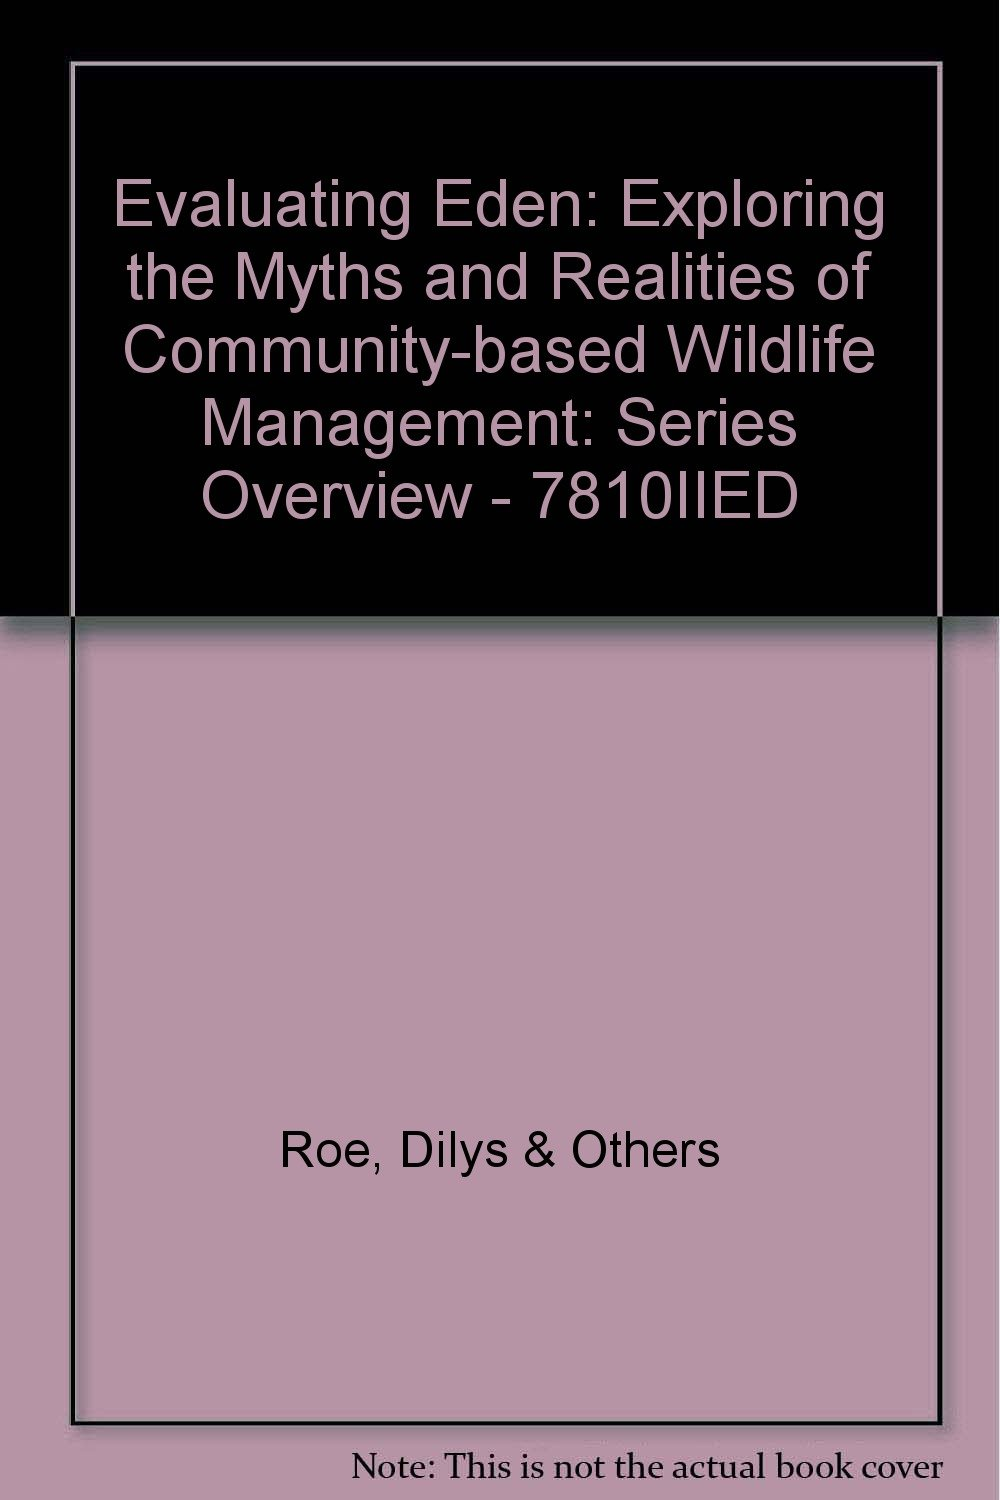 Evaluating Eden: Exploring the Myths and Realities of Community-based Wildlife Management: Series Overview - 7810IIED pdf